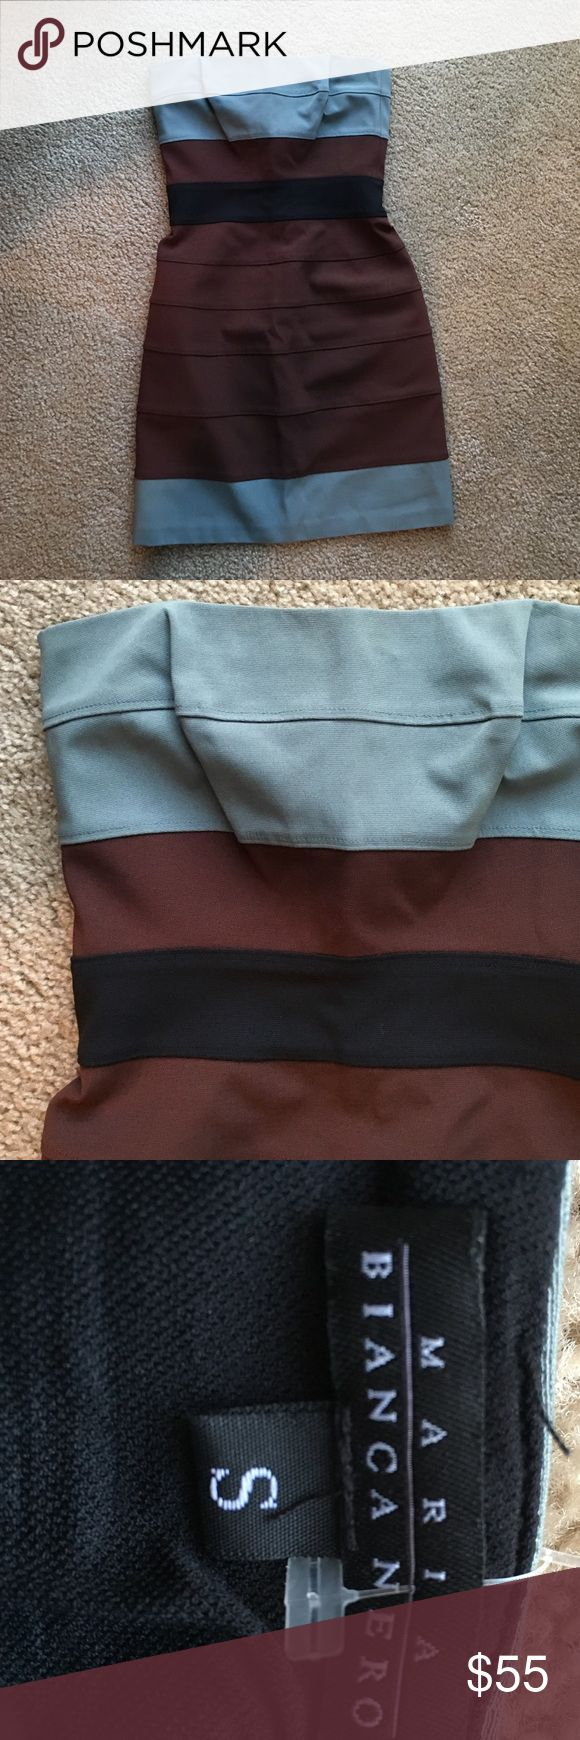 Maria Bianca Nero bandage dress, size s Selling a Maria Bianca Nero strapless dress, size small. Dress is a light blue, brown, and black color. Dress has back zipper and is meant to be fitted, but still has stretch to it! maria bianca nero Dresses